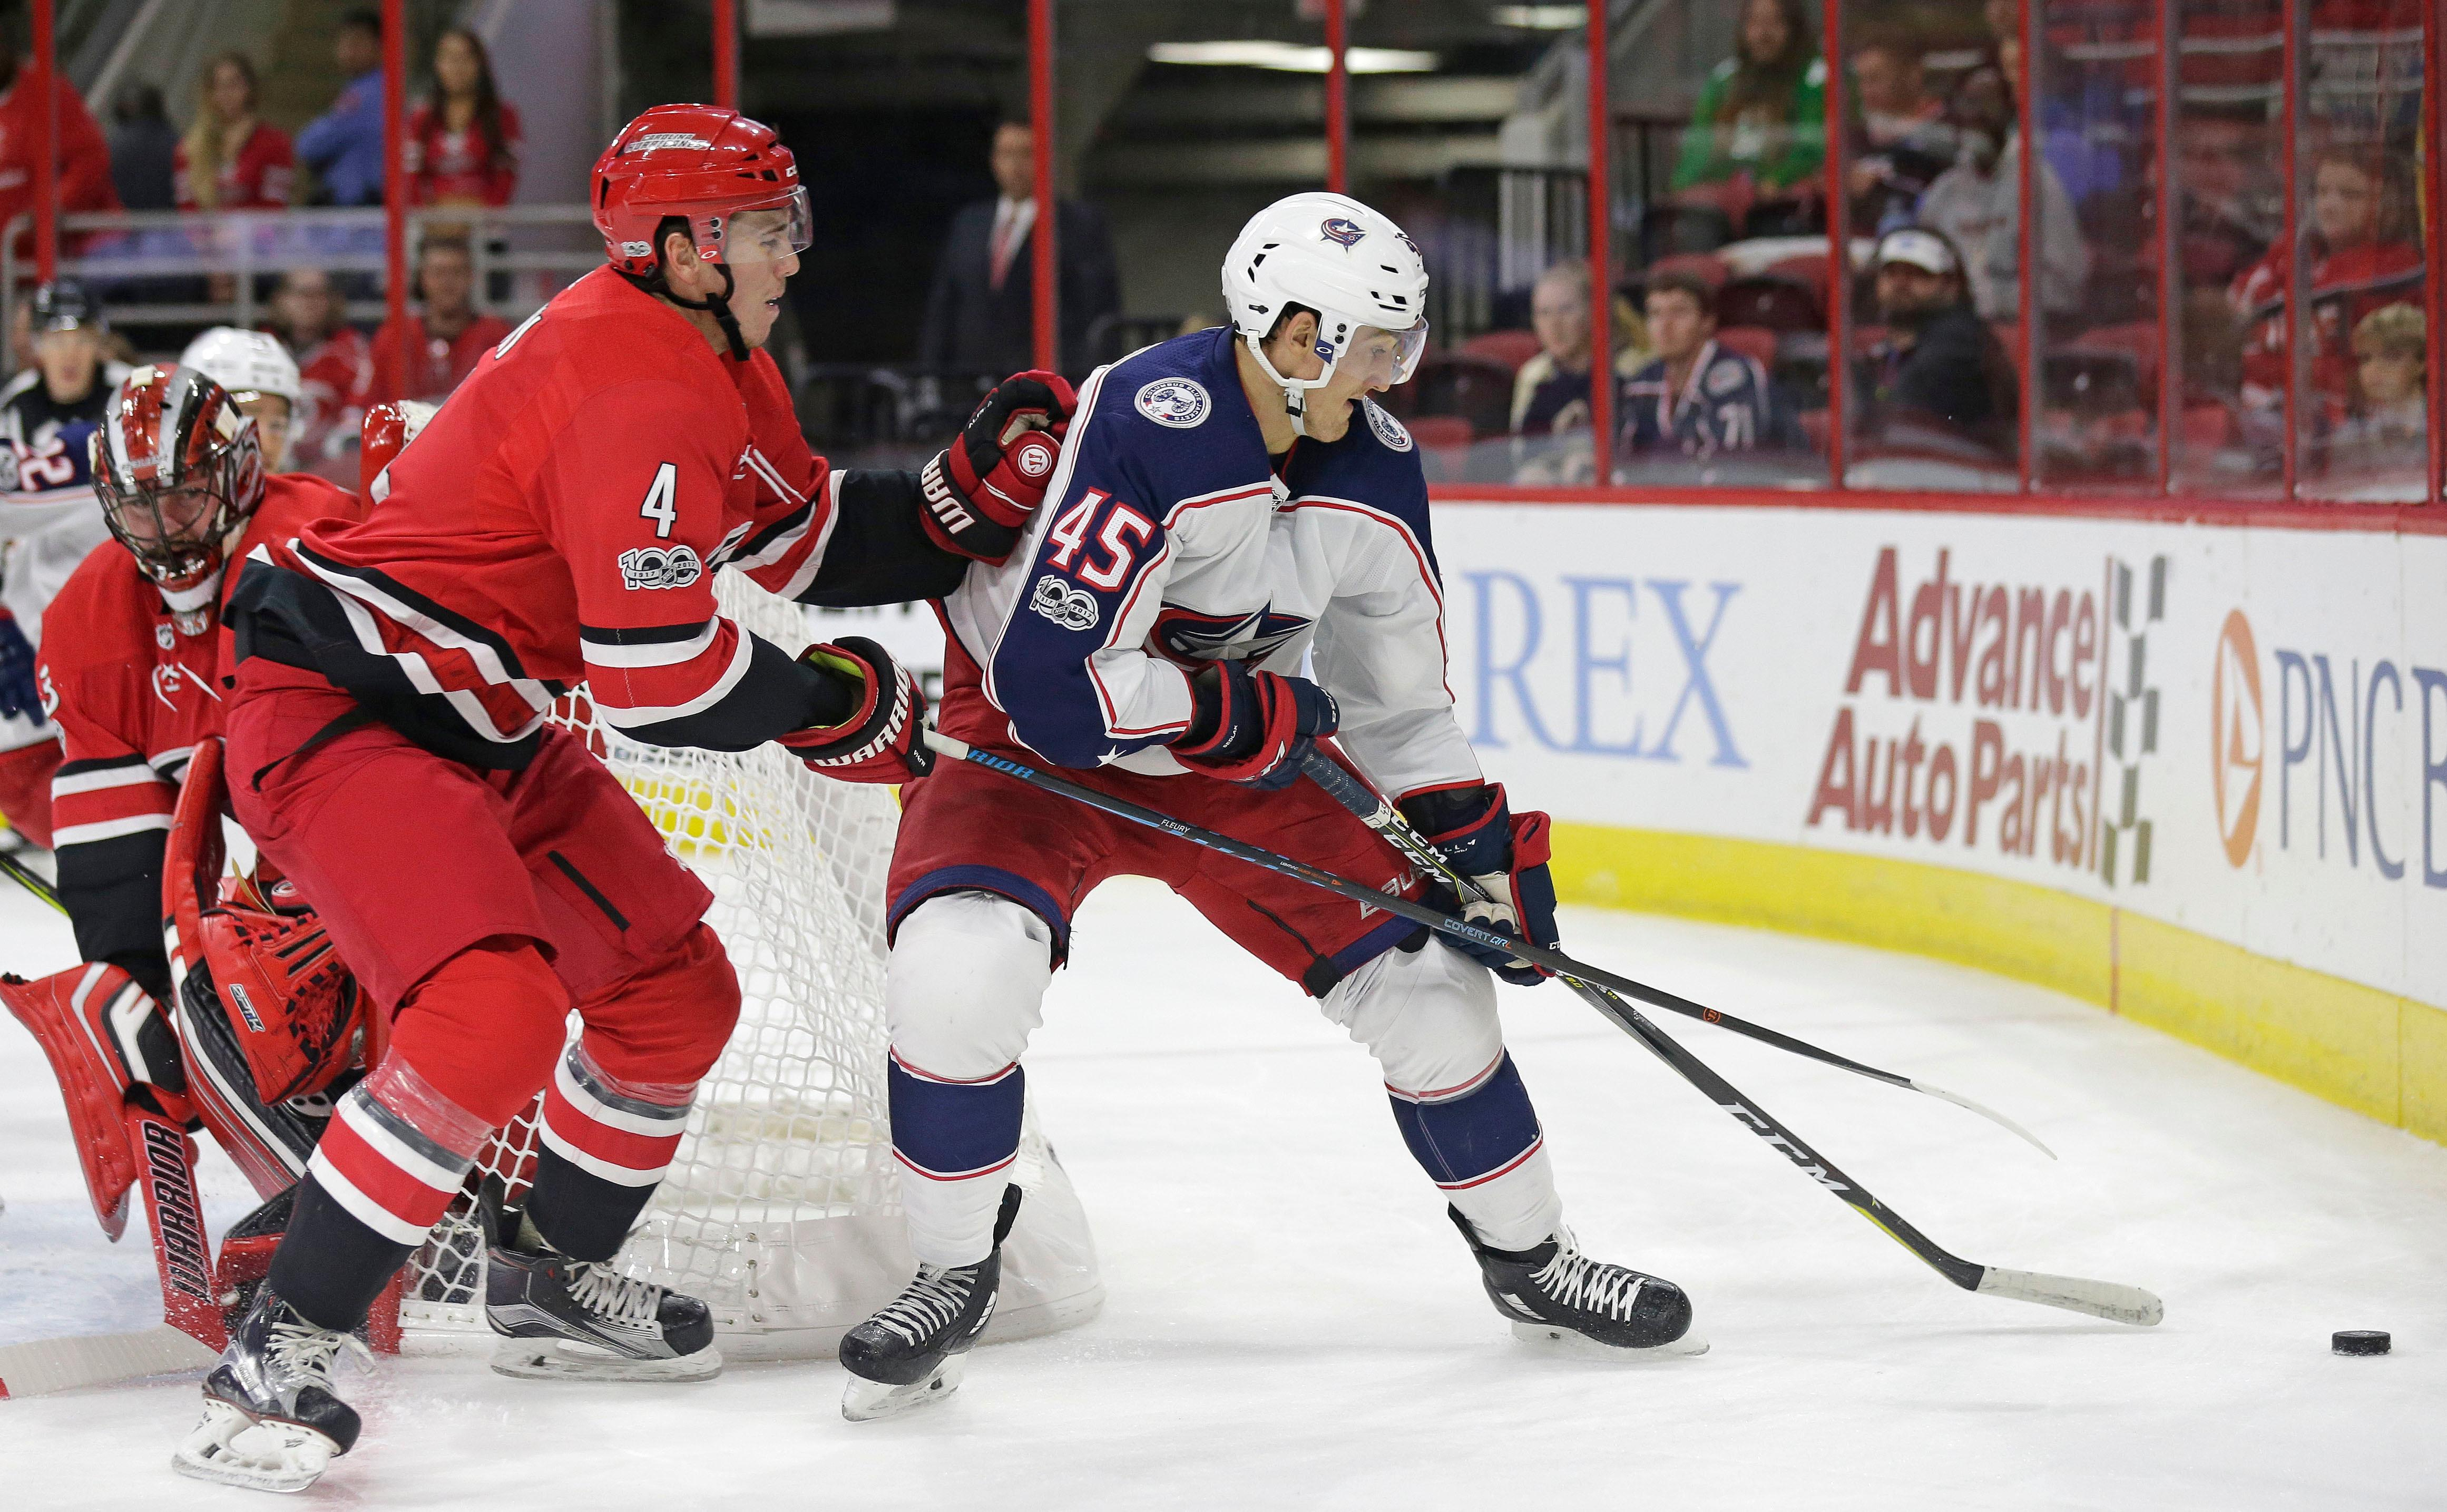 Carolina Hurricanes' Haydn Fleury (4) and Columbus Blue Jackets' Lukas Sedlak (45), of the Czech Republic, chase the puck during the first period of an NHL hockey game in Raleigh, N.C., Tuesday, Oct. 10, 2017. (AP Photo/Gerry Broome)